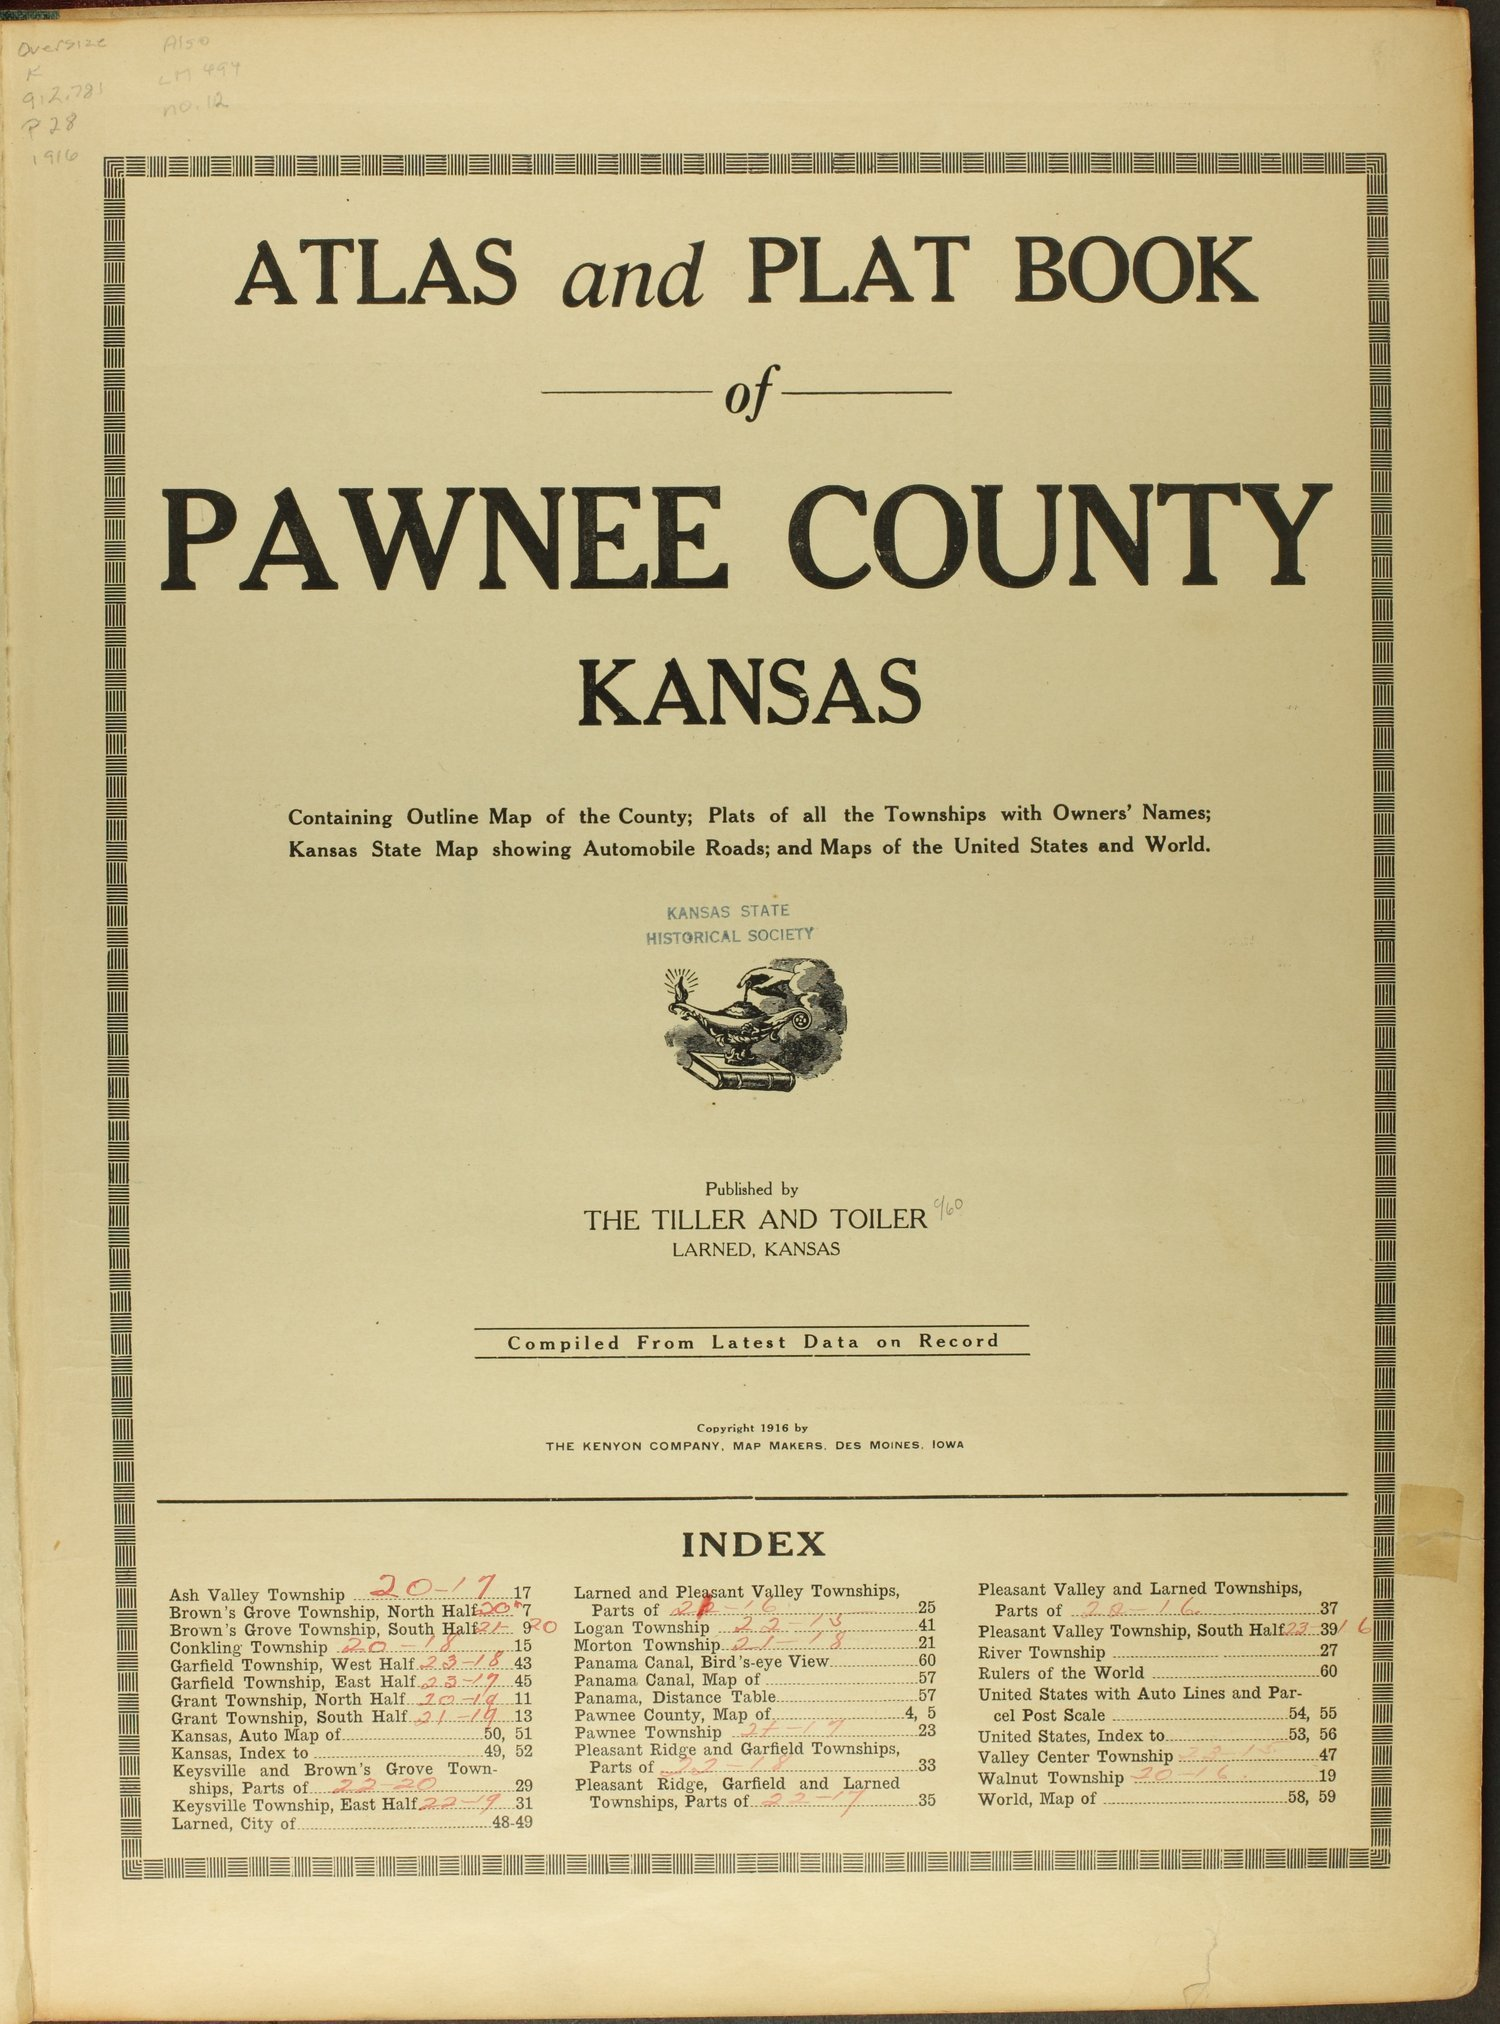 Atlas and plat book of Pawnee County, Kansas - Title Page